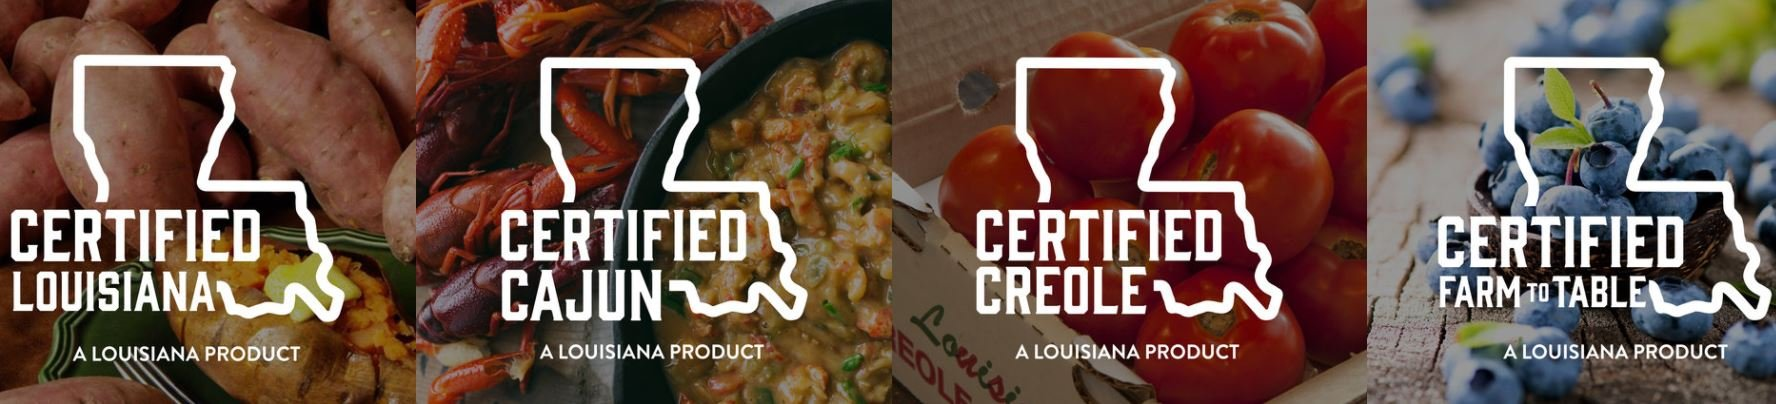 Agriculture dept. rolls out new 'Certified Louisiana' logos / Courtesy: Louisiana Department of Agriculture